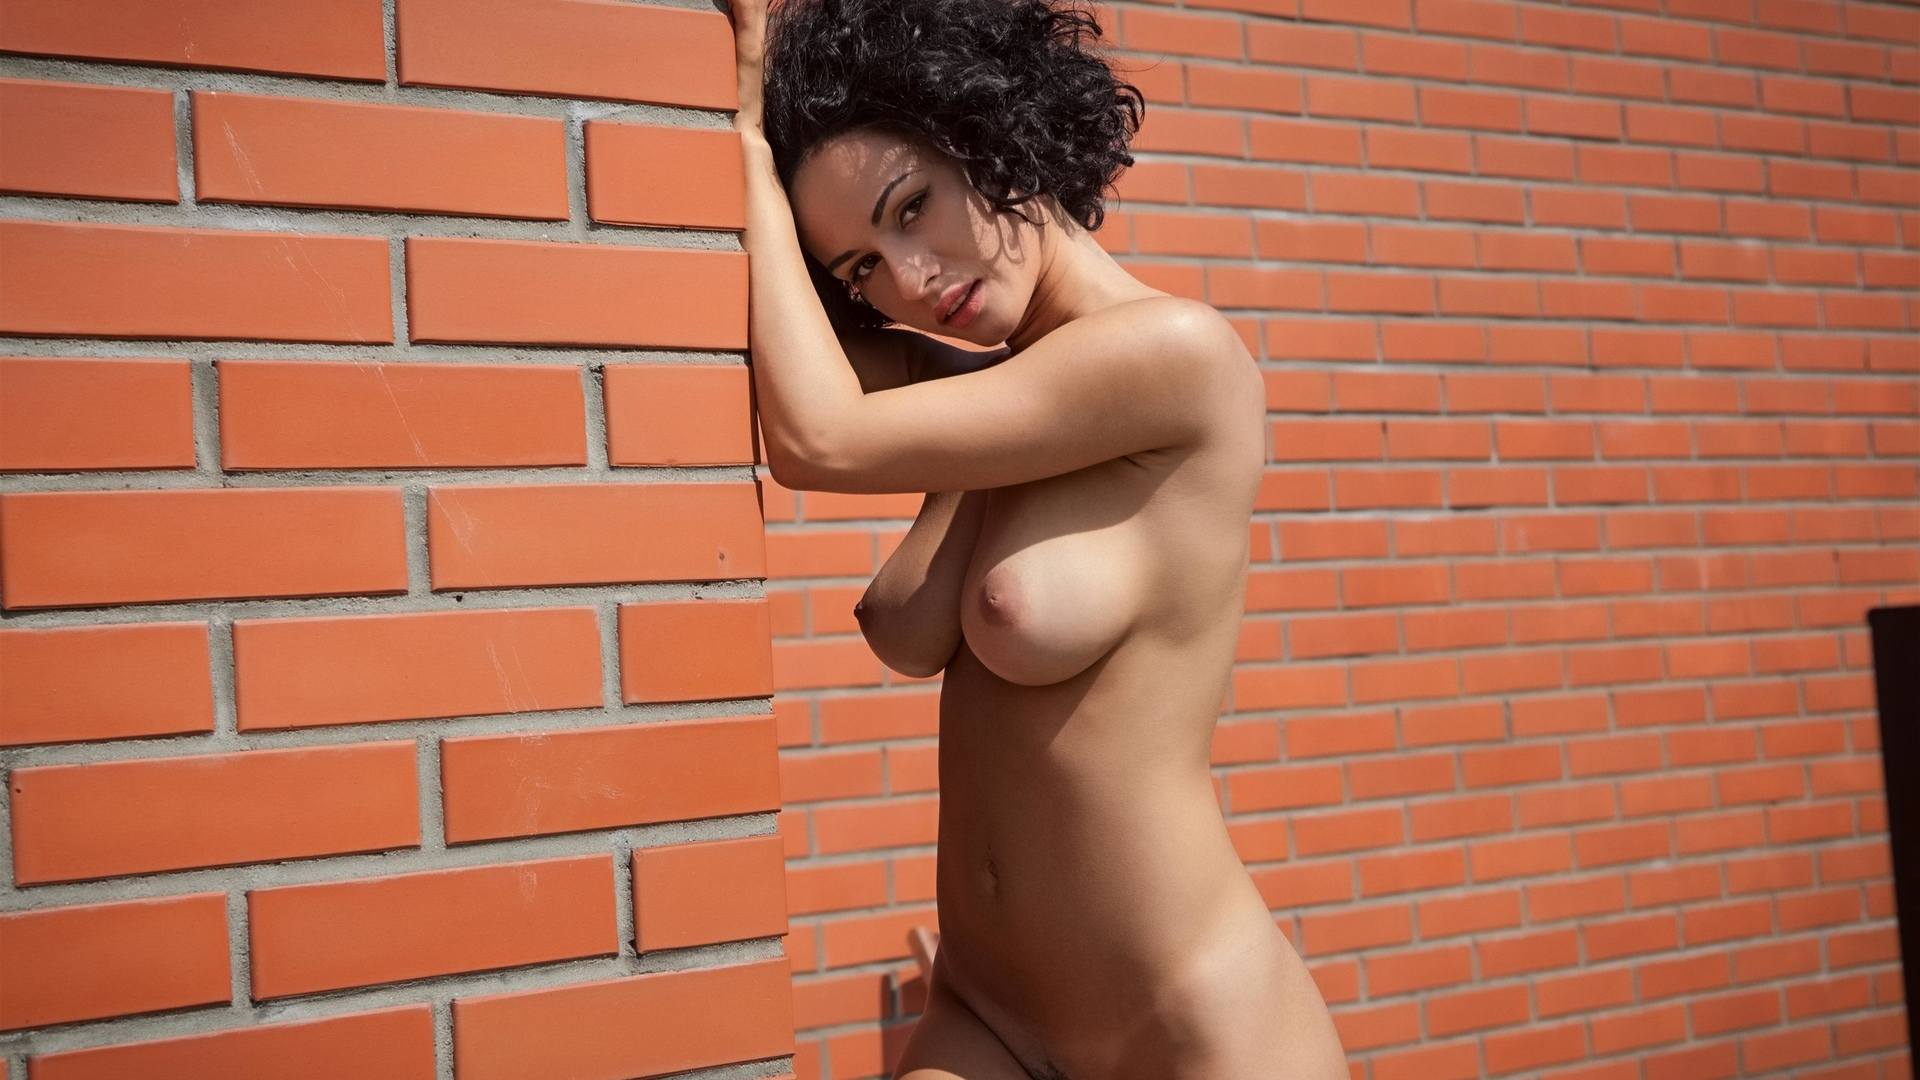 Nudes Archives Red Hot Suz